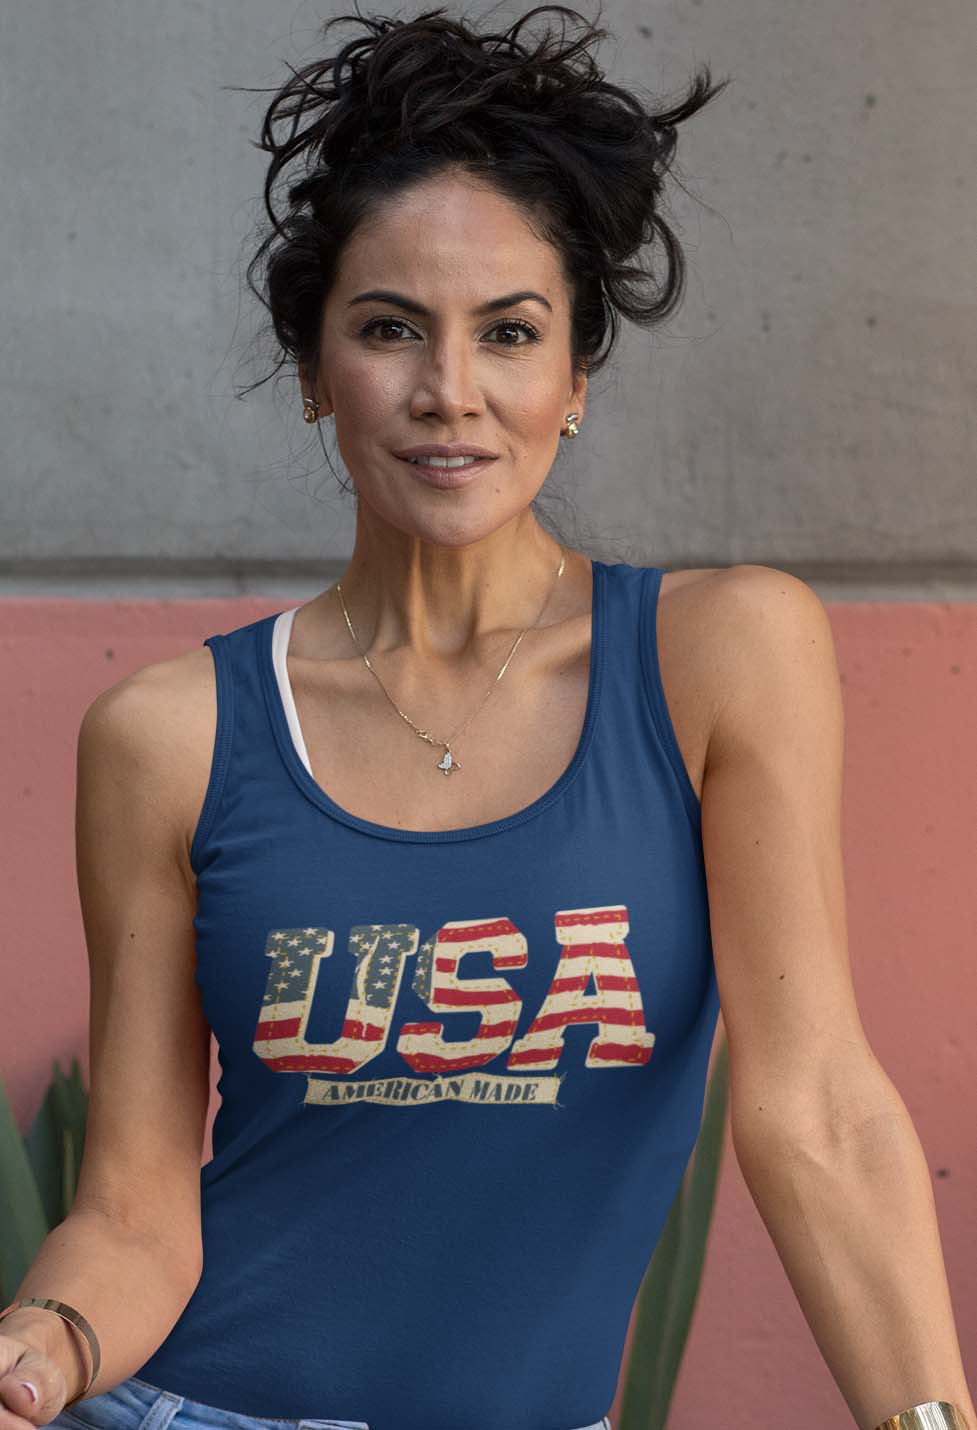 Vintage USA on a Women's Red Core Tank